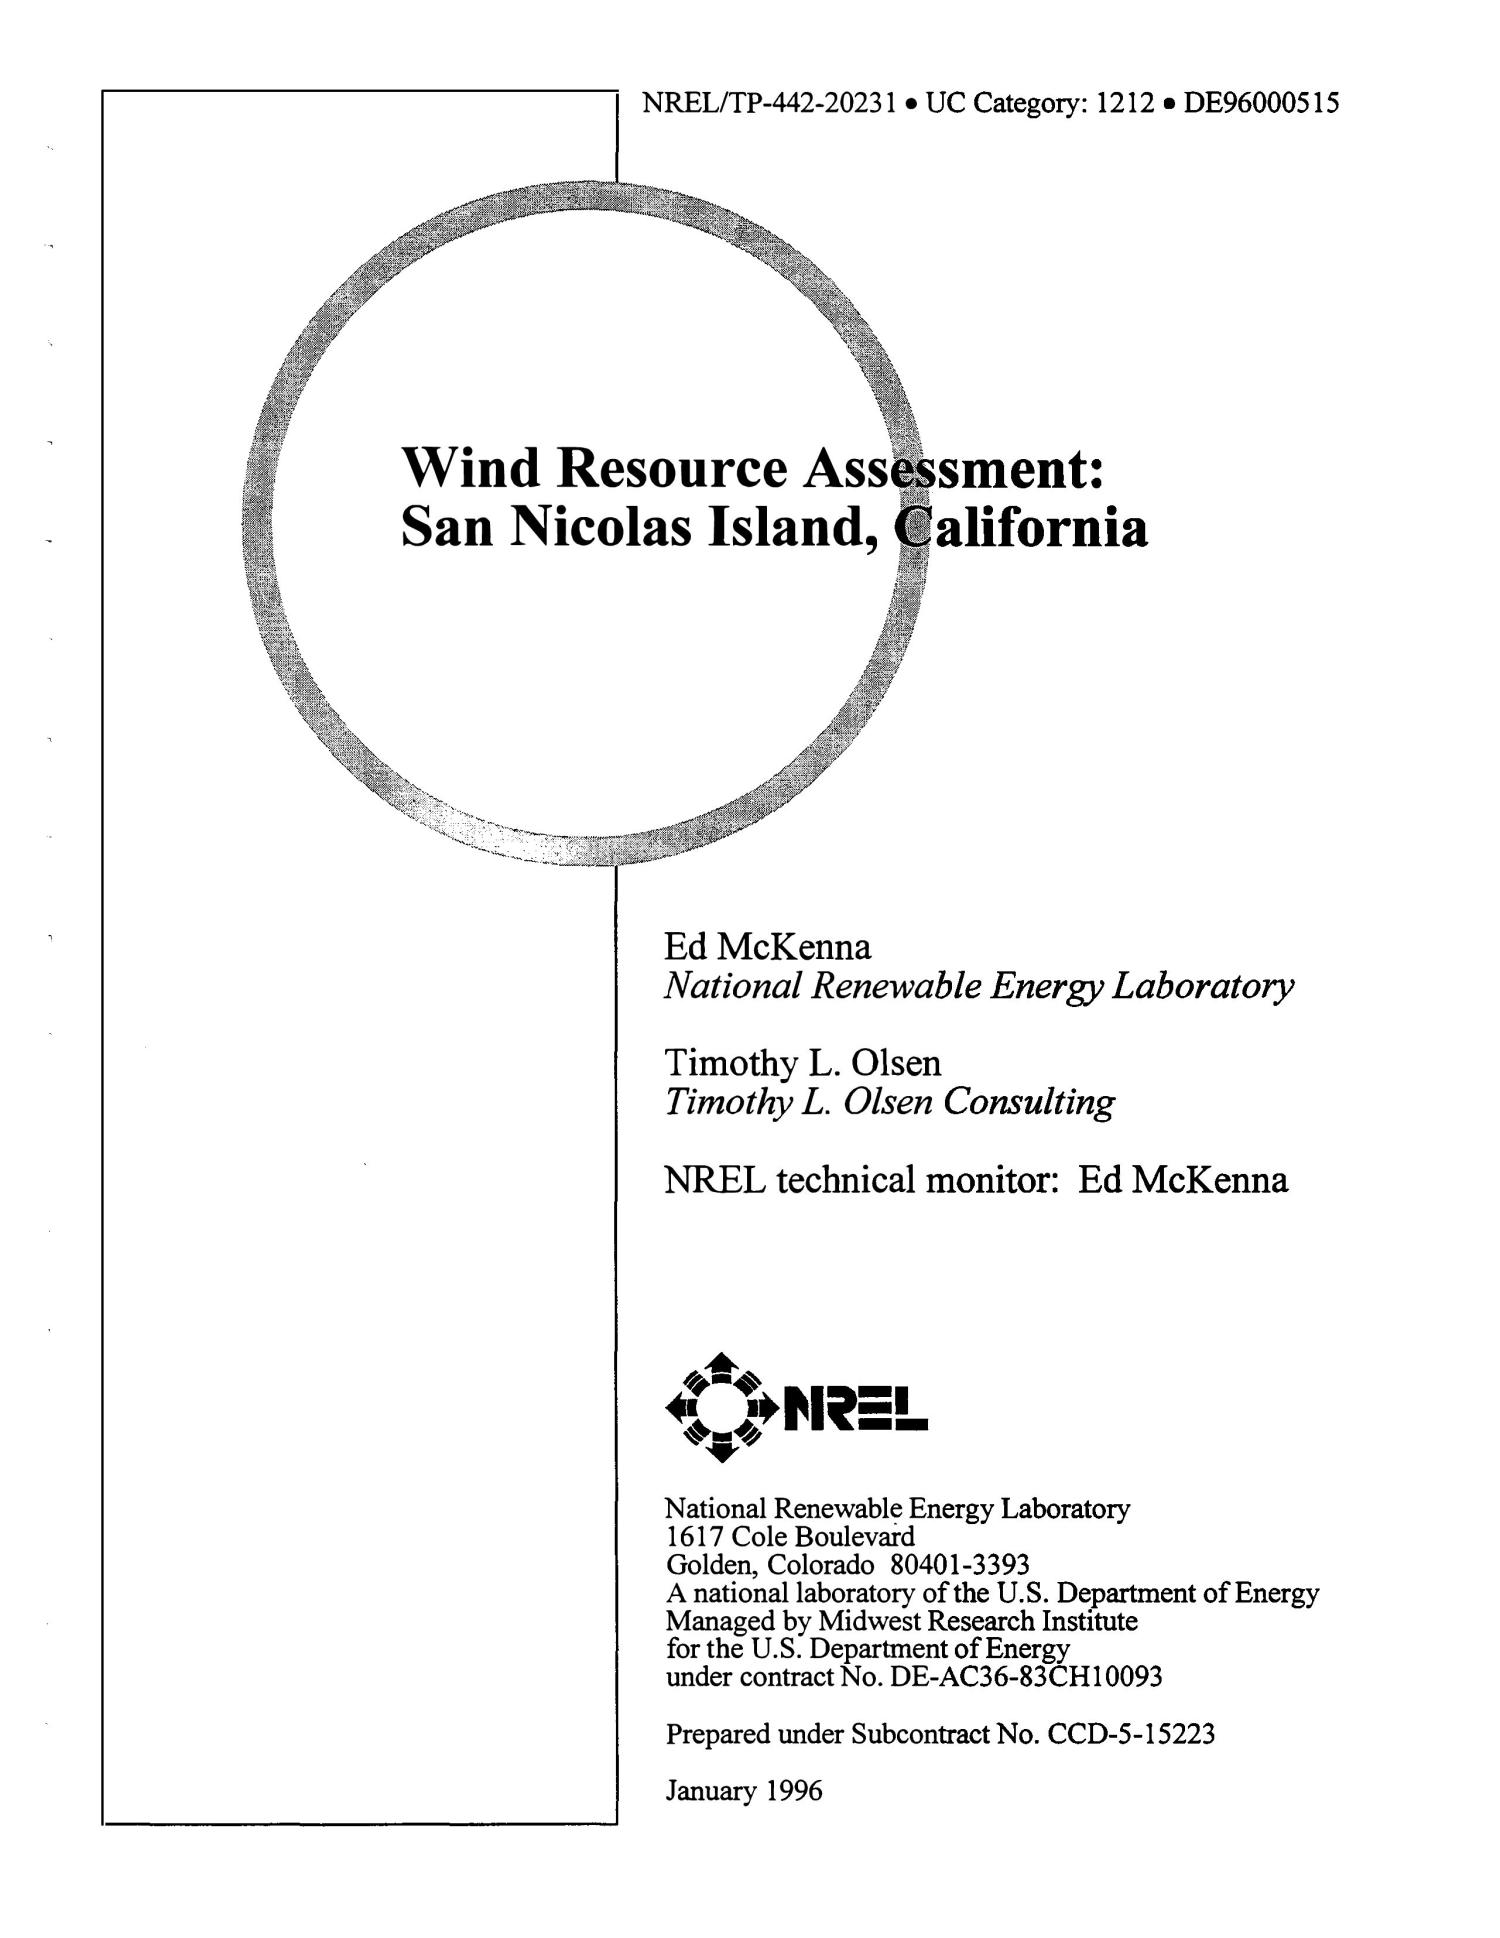 Wind resource assessment: San Nicolas Island, California                                                                                                      [Sequence #]: 1 of 109